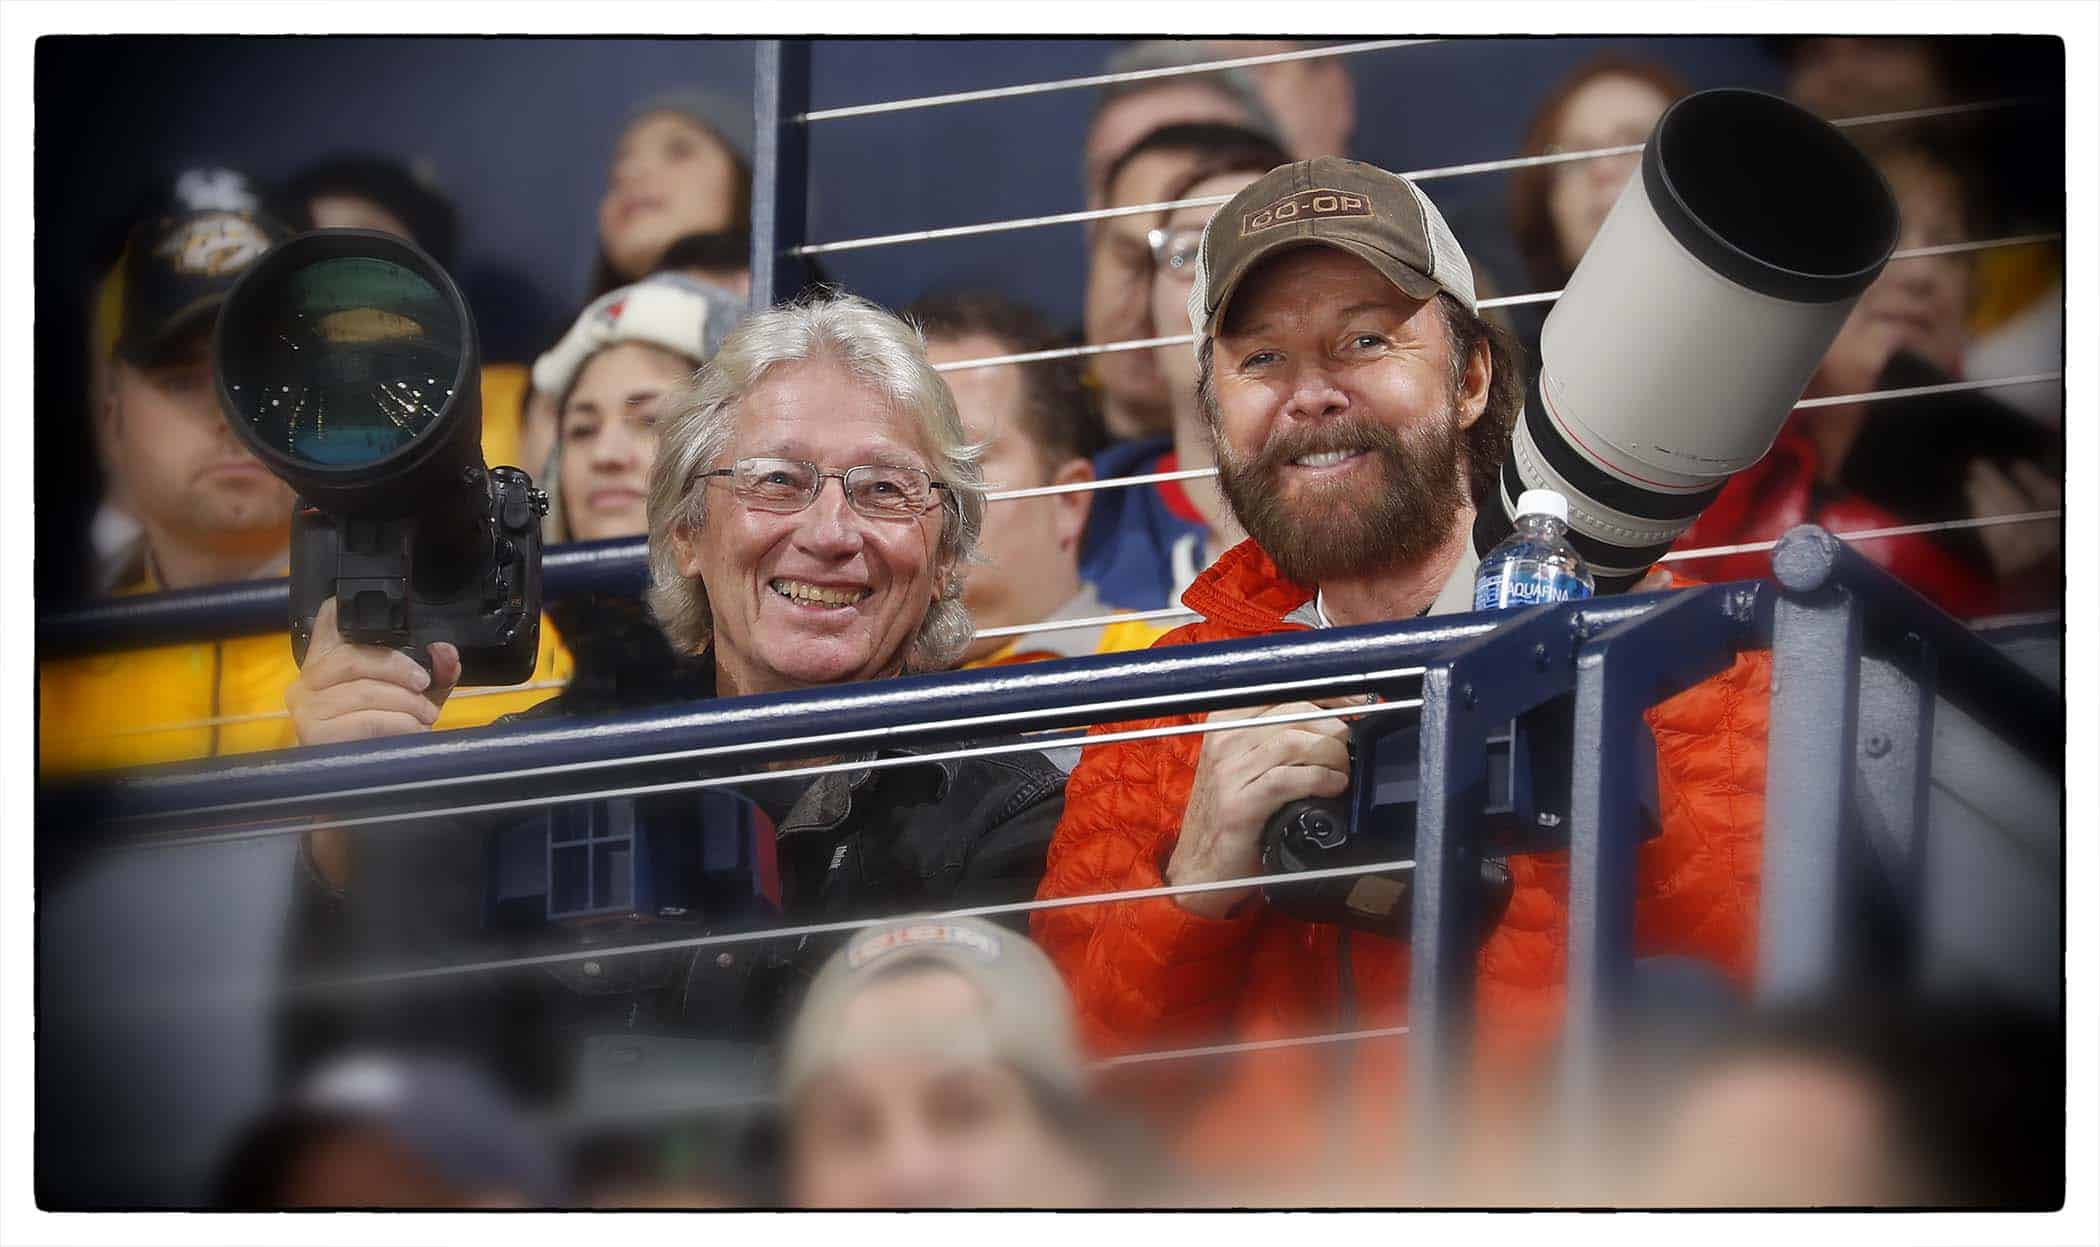 NASHVILLE, TN - DECEMBER 17: during an NHL game at Bridgestone Arena on December 17, 2016 in Nashville, Tennessee. (Photo by John Russell/NHLI via Getty Images) *** Local Caption ***